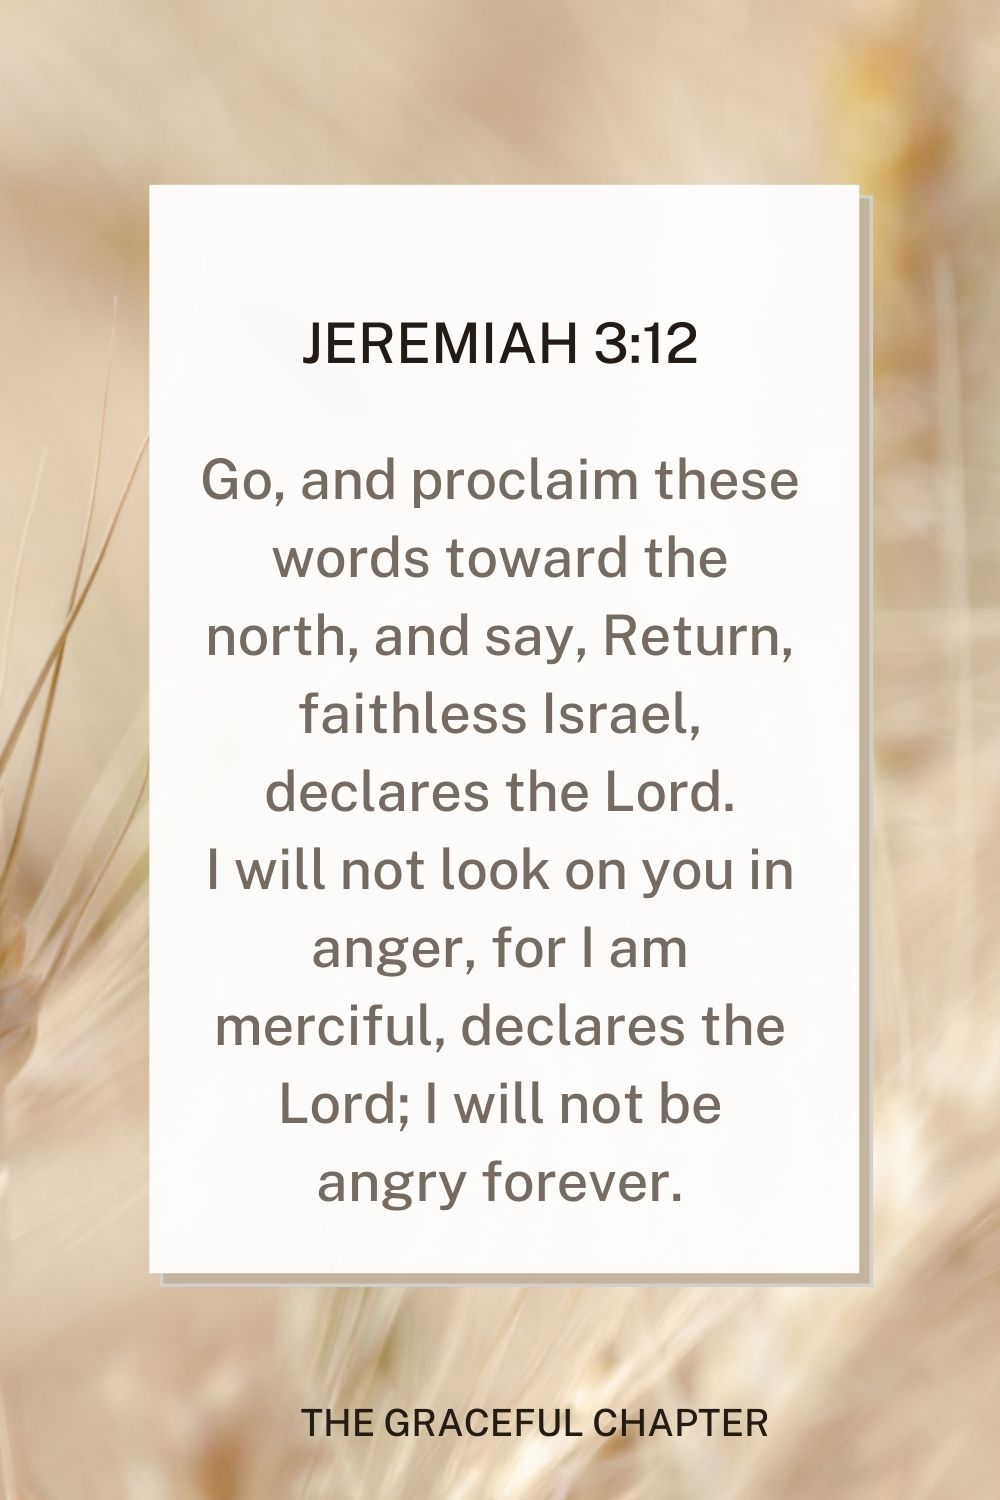 Go, and proclaim these words toward the north, and say, Return, faithless Israel, declares the Lord. I will not look on you in anger, for I am merciful, declares the Lord; I will not be angry forever. Jeremiah 3:12